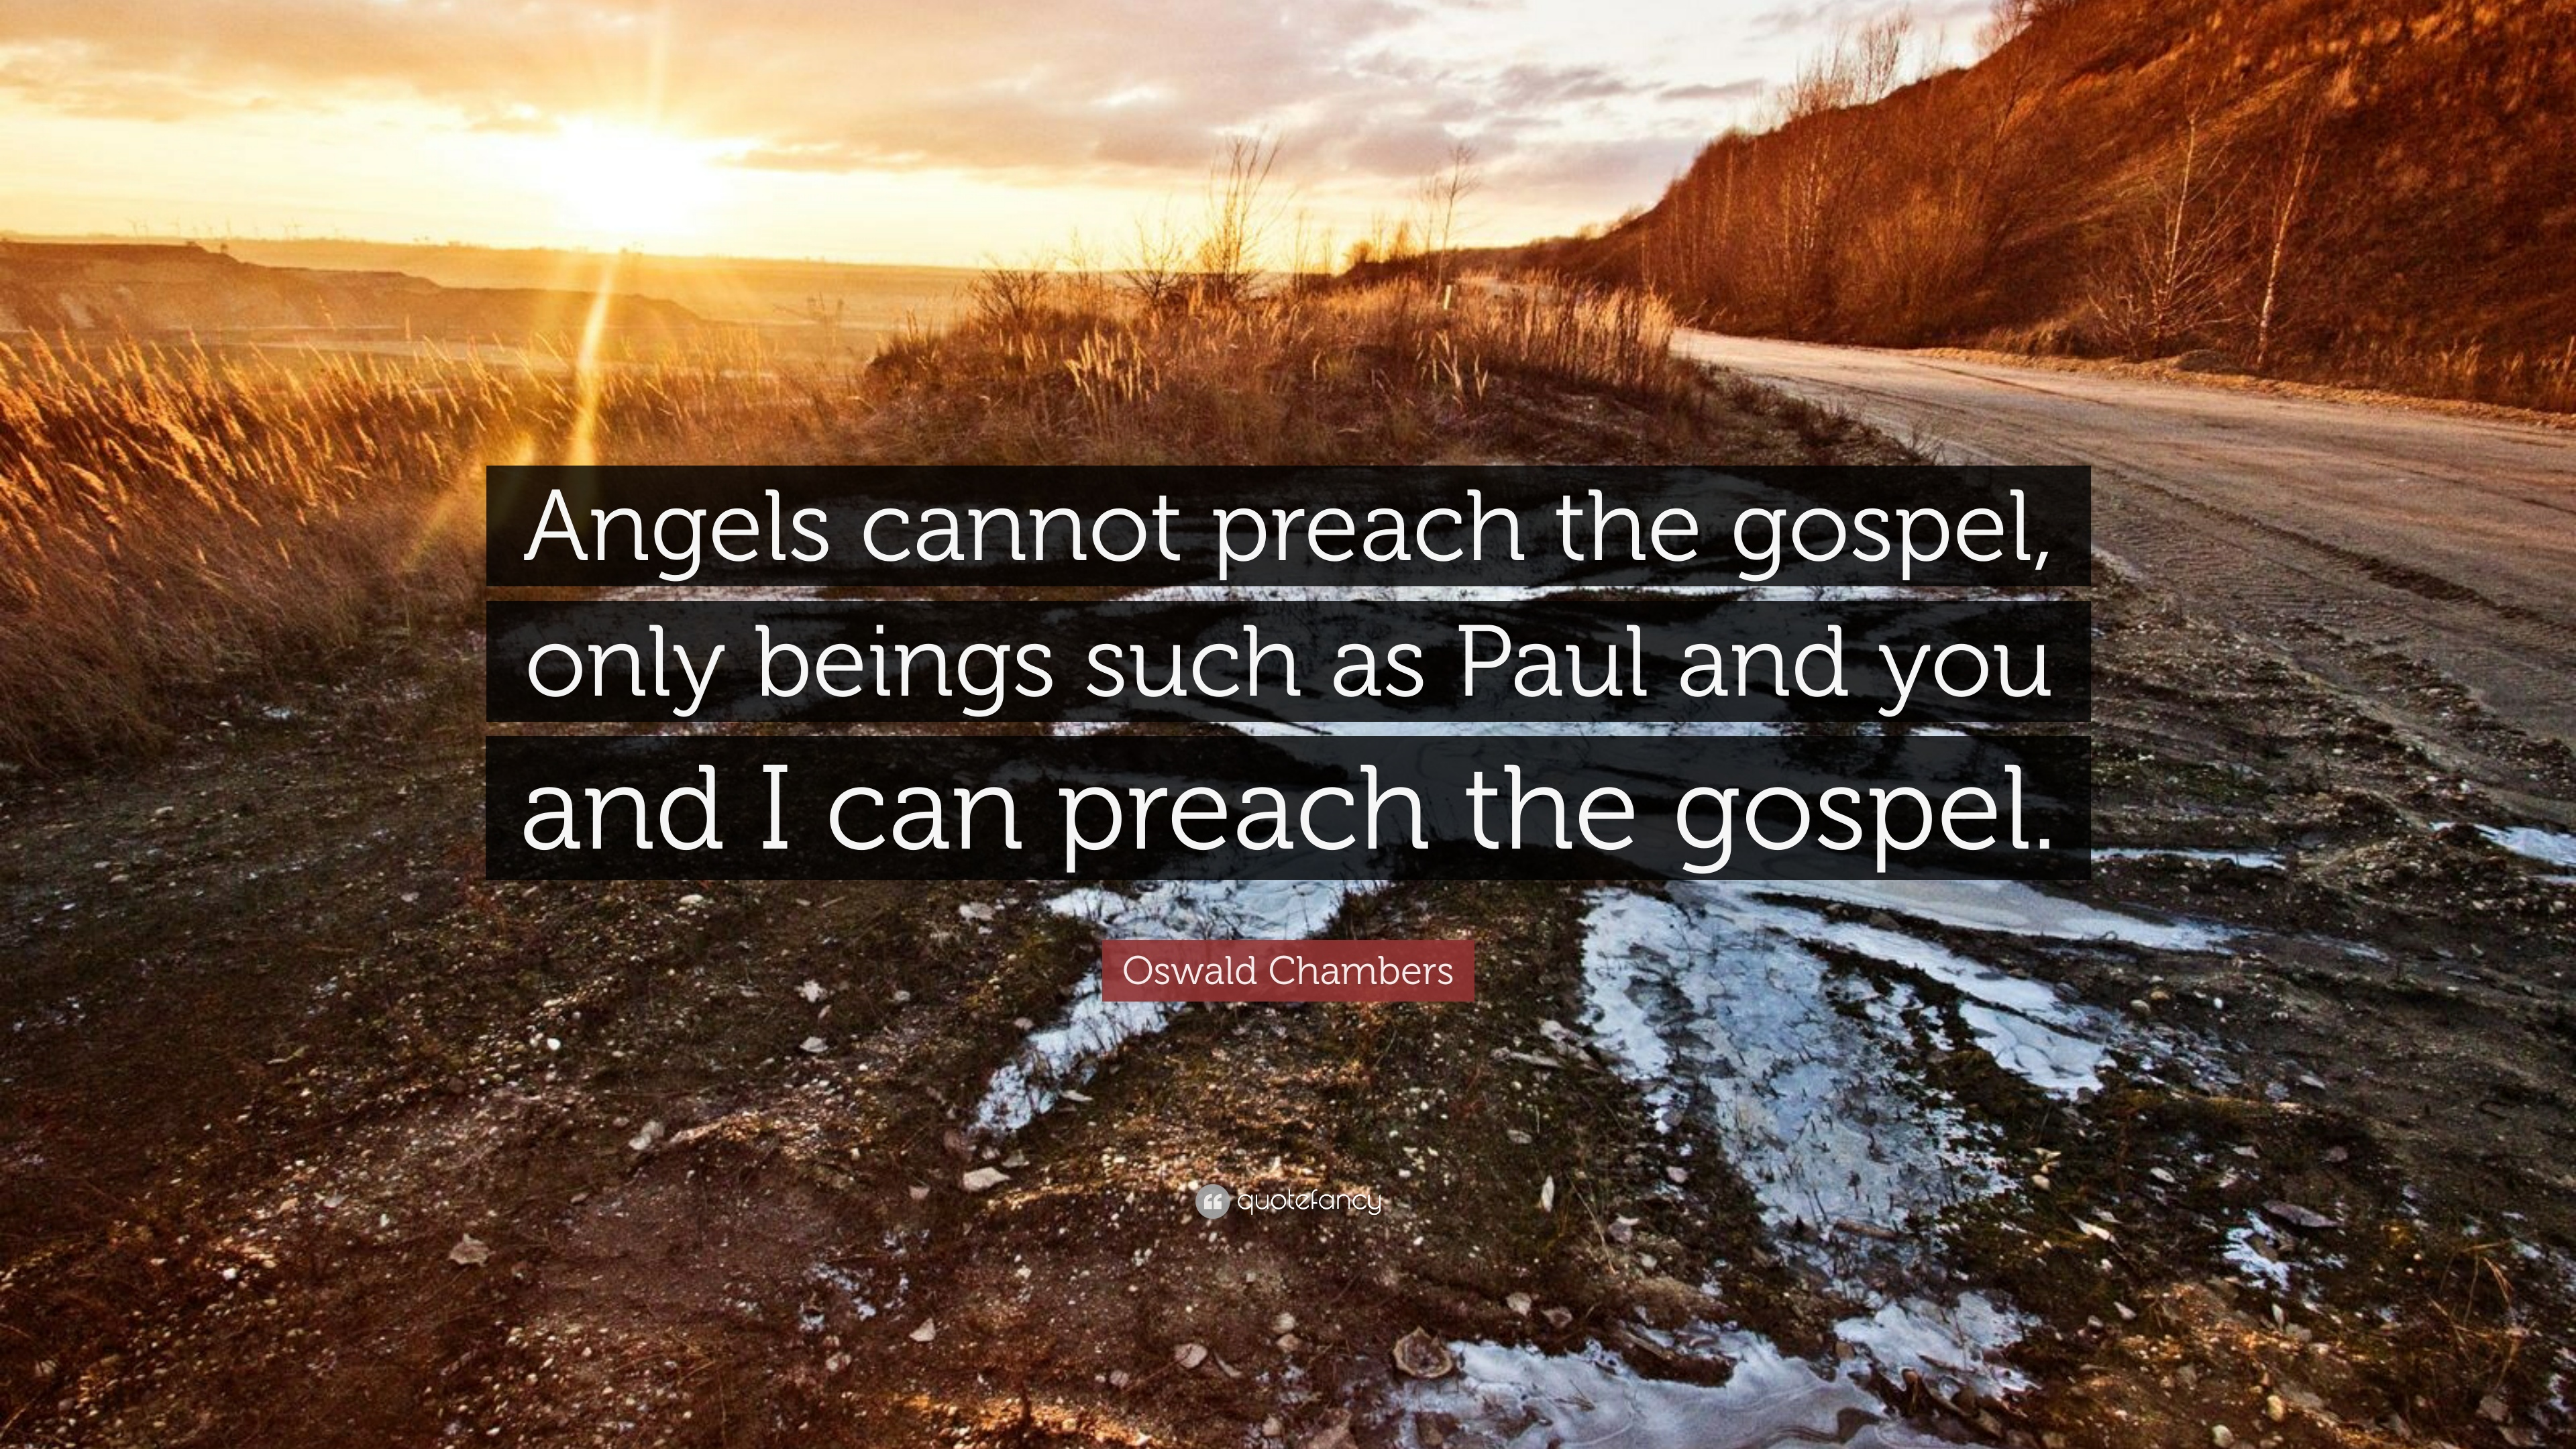 oswald chambers quote angels cannot preach the gospel only beings